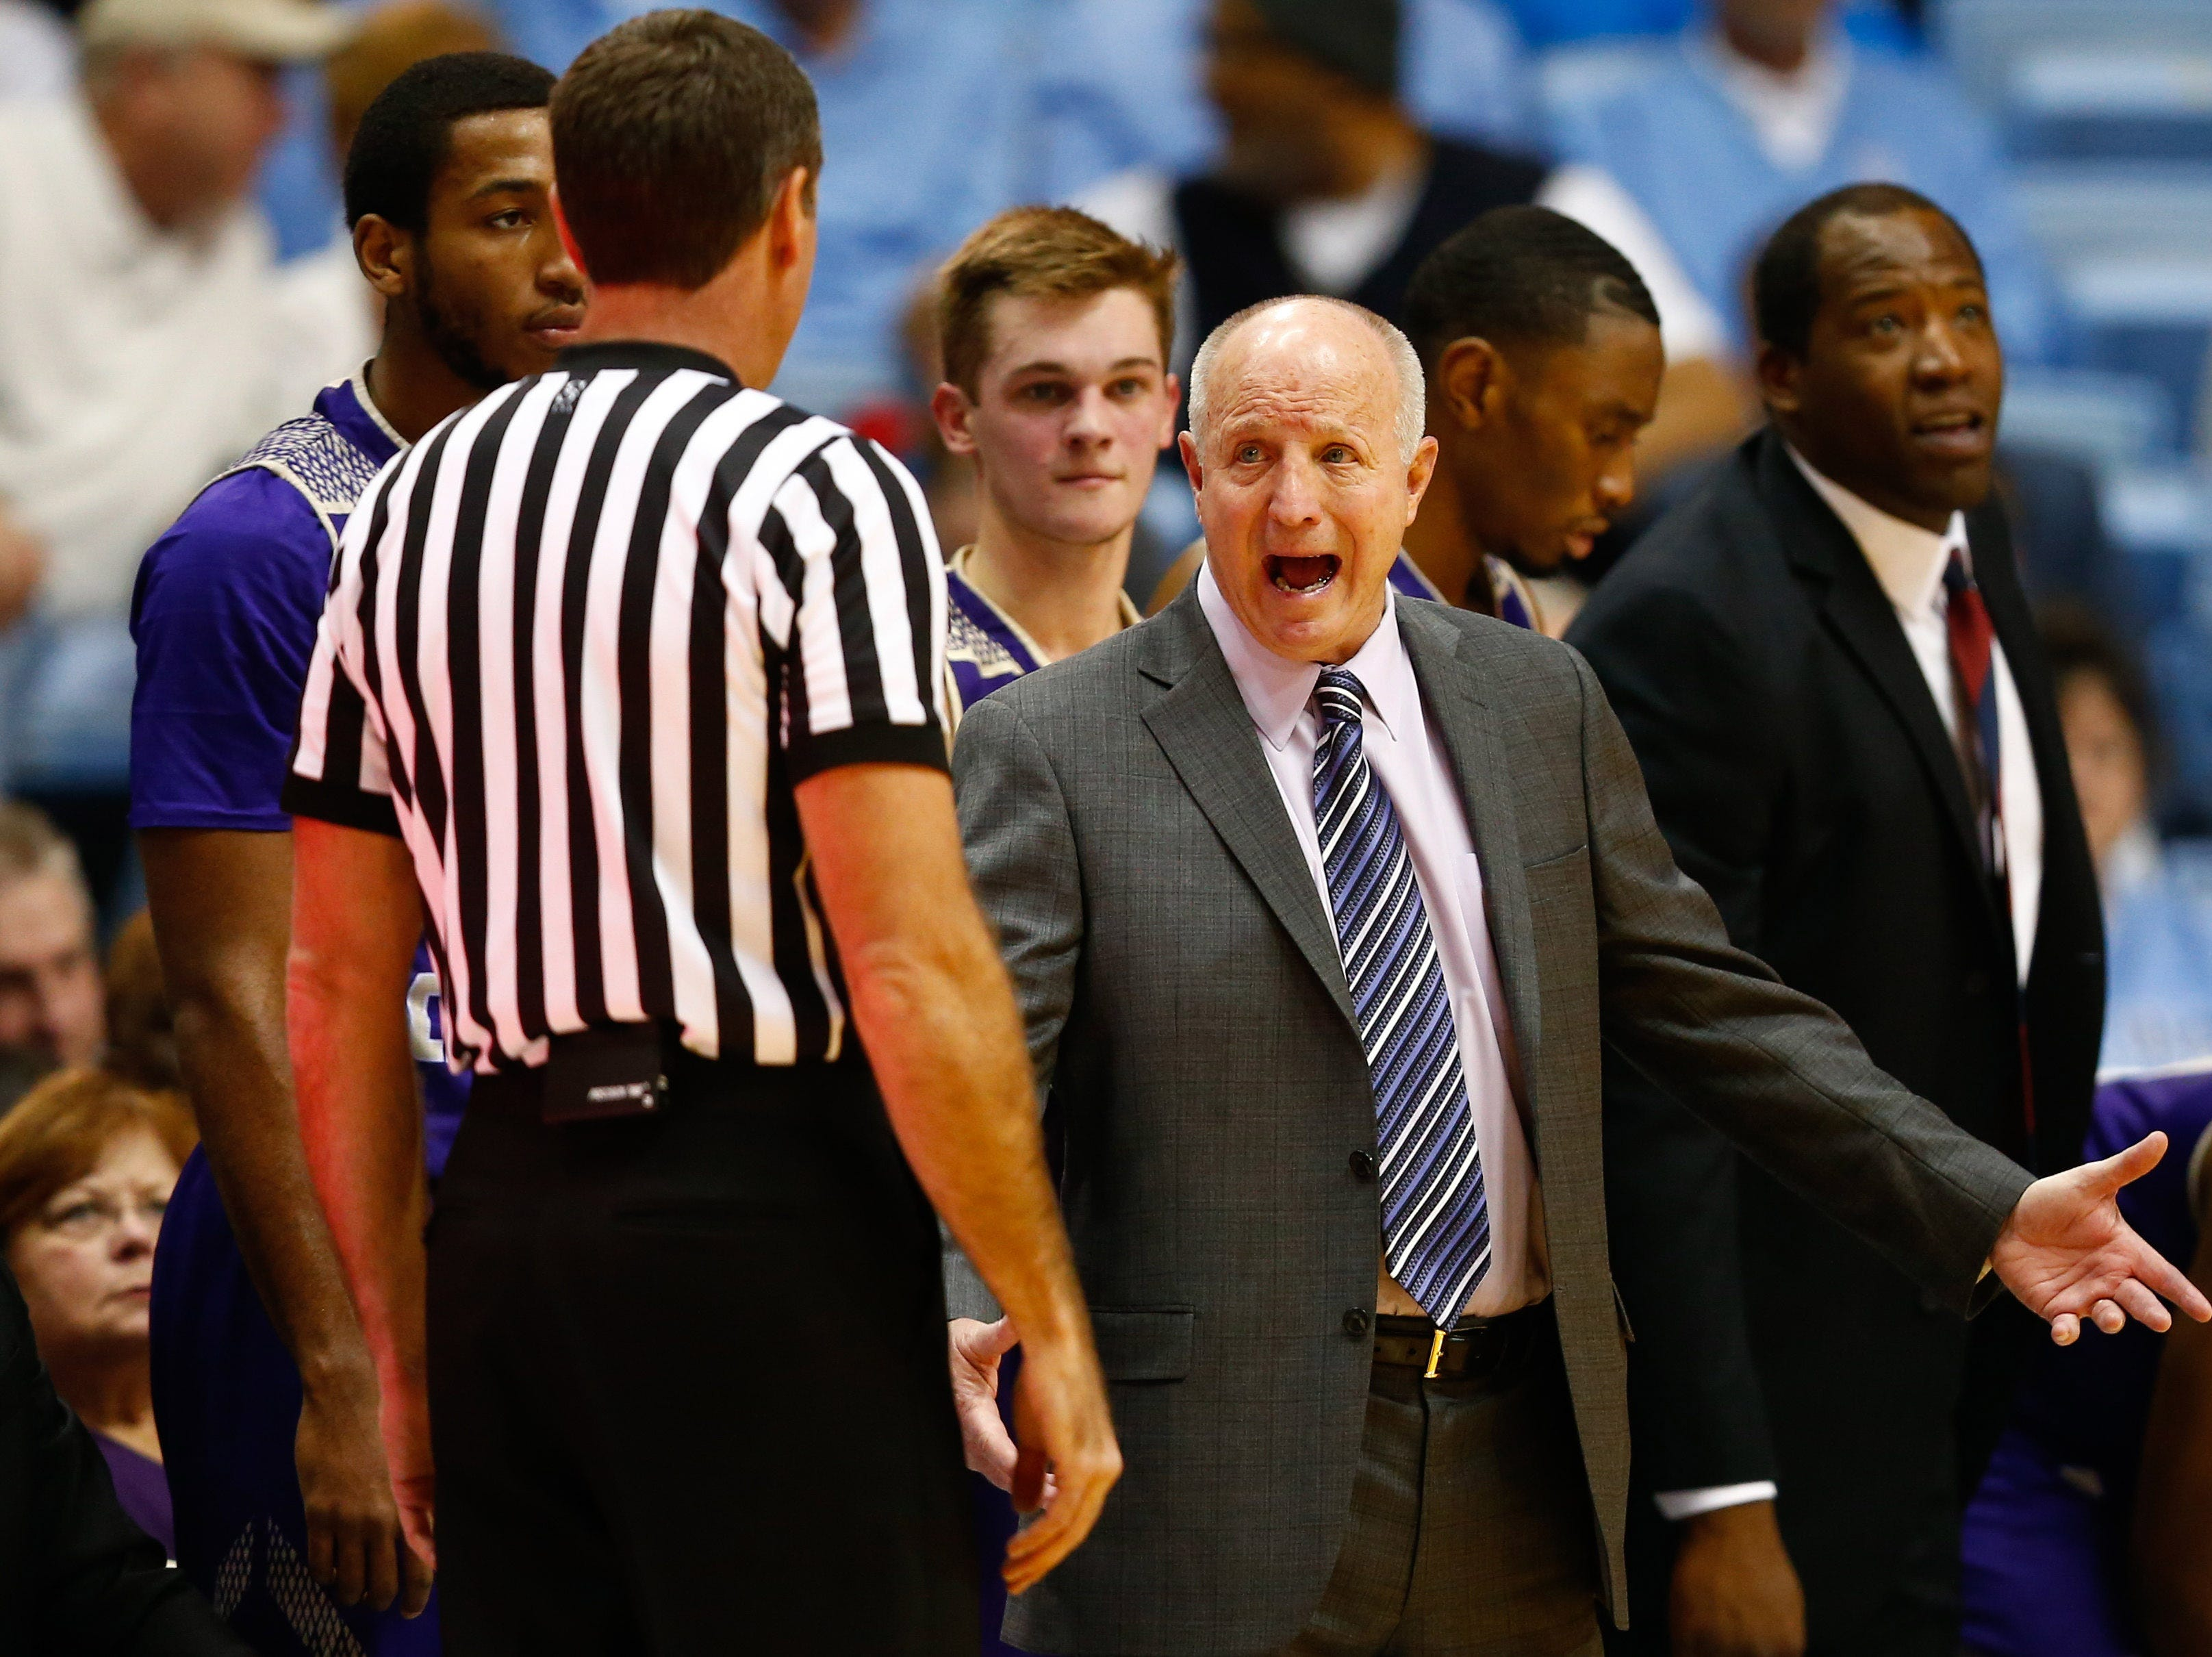 Dec 6, 2017; Chapel Hill, NC, USA; Western Carolina Catamounts head coach Larry Hunter talks with an official in the first half against the North Carolina Tar Heels at Dean E. Smith Center. Mandatory Credit: Jeremy Brevard-USA TODAY Sports